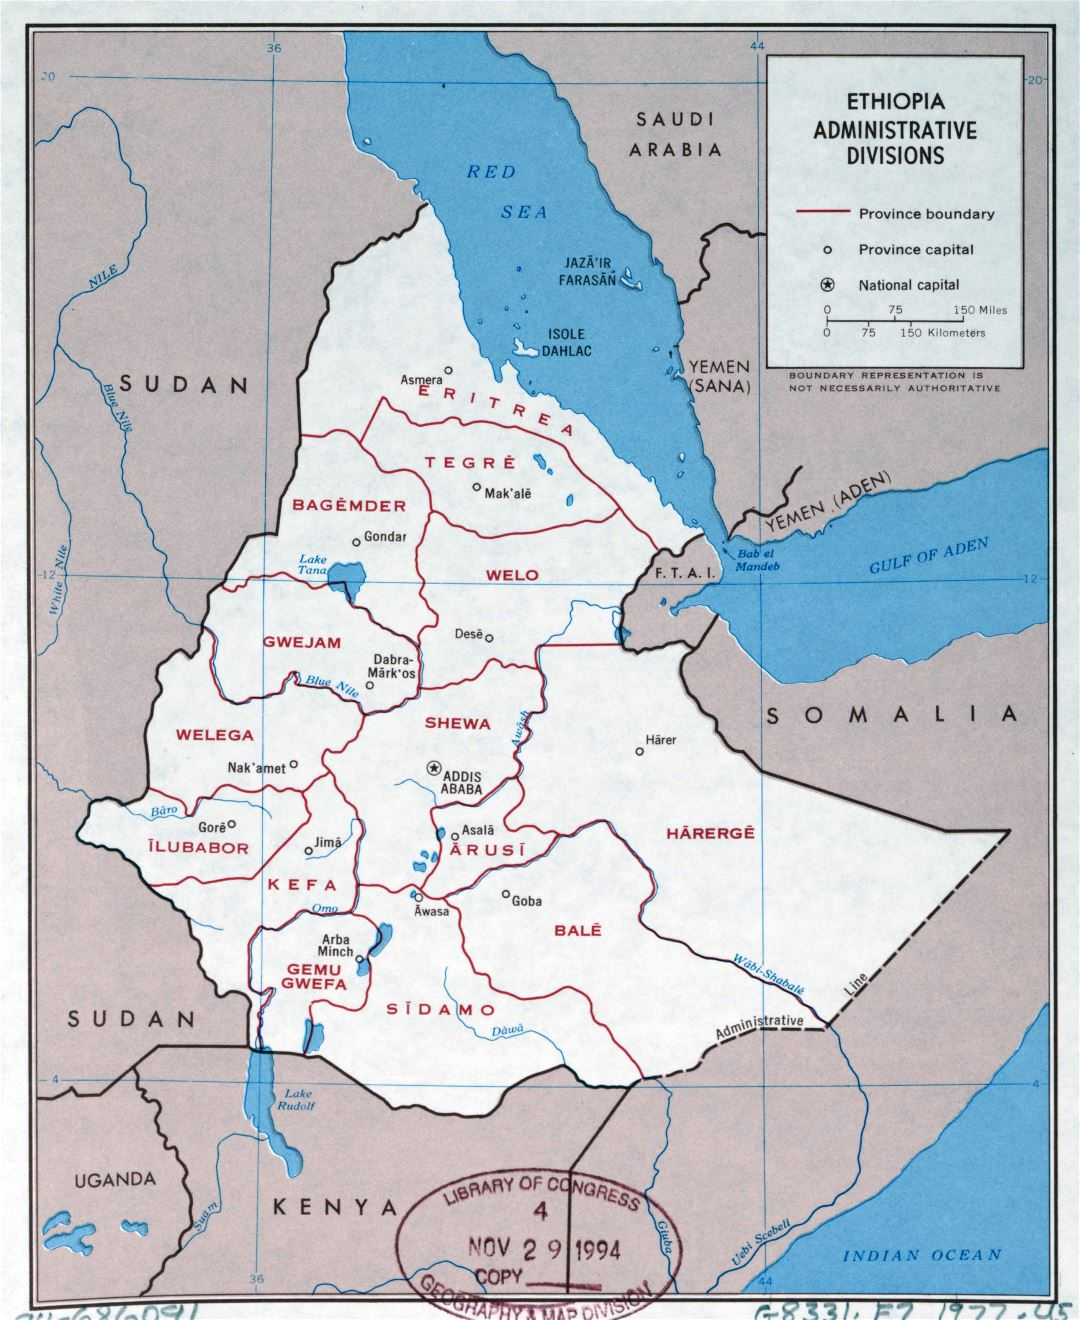 Large detailed administrative divisions map of Ethiopia - 1977